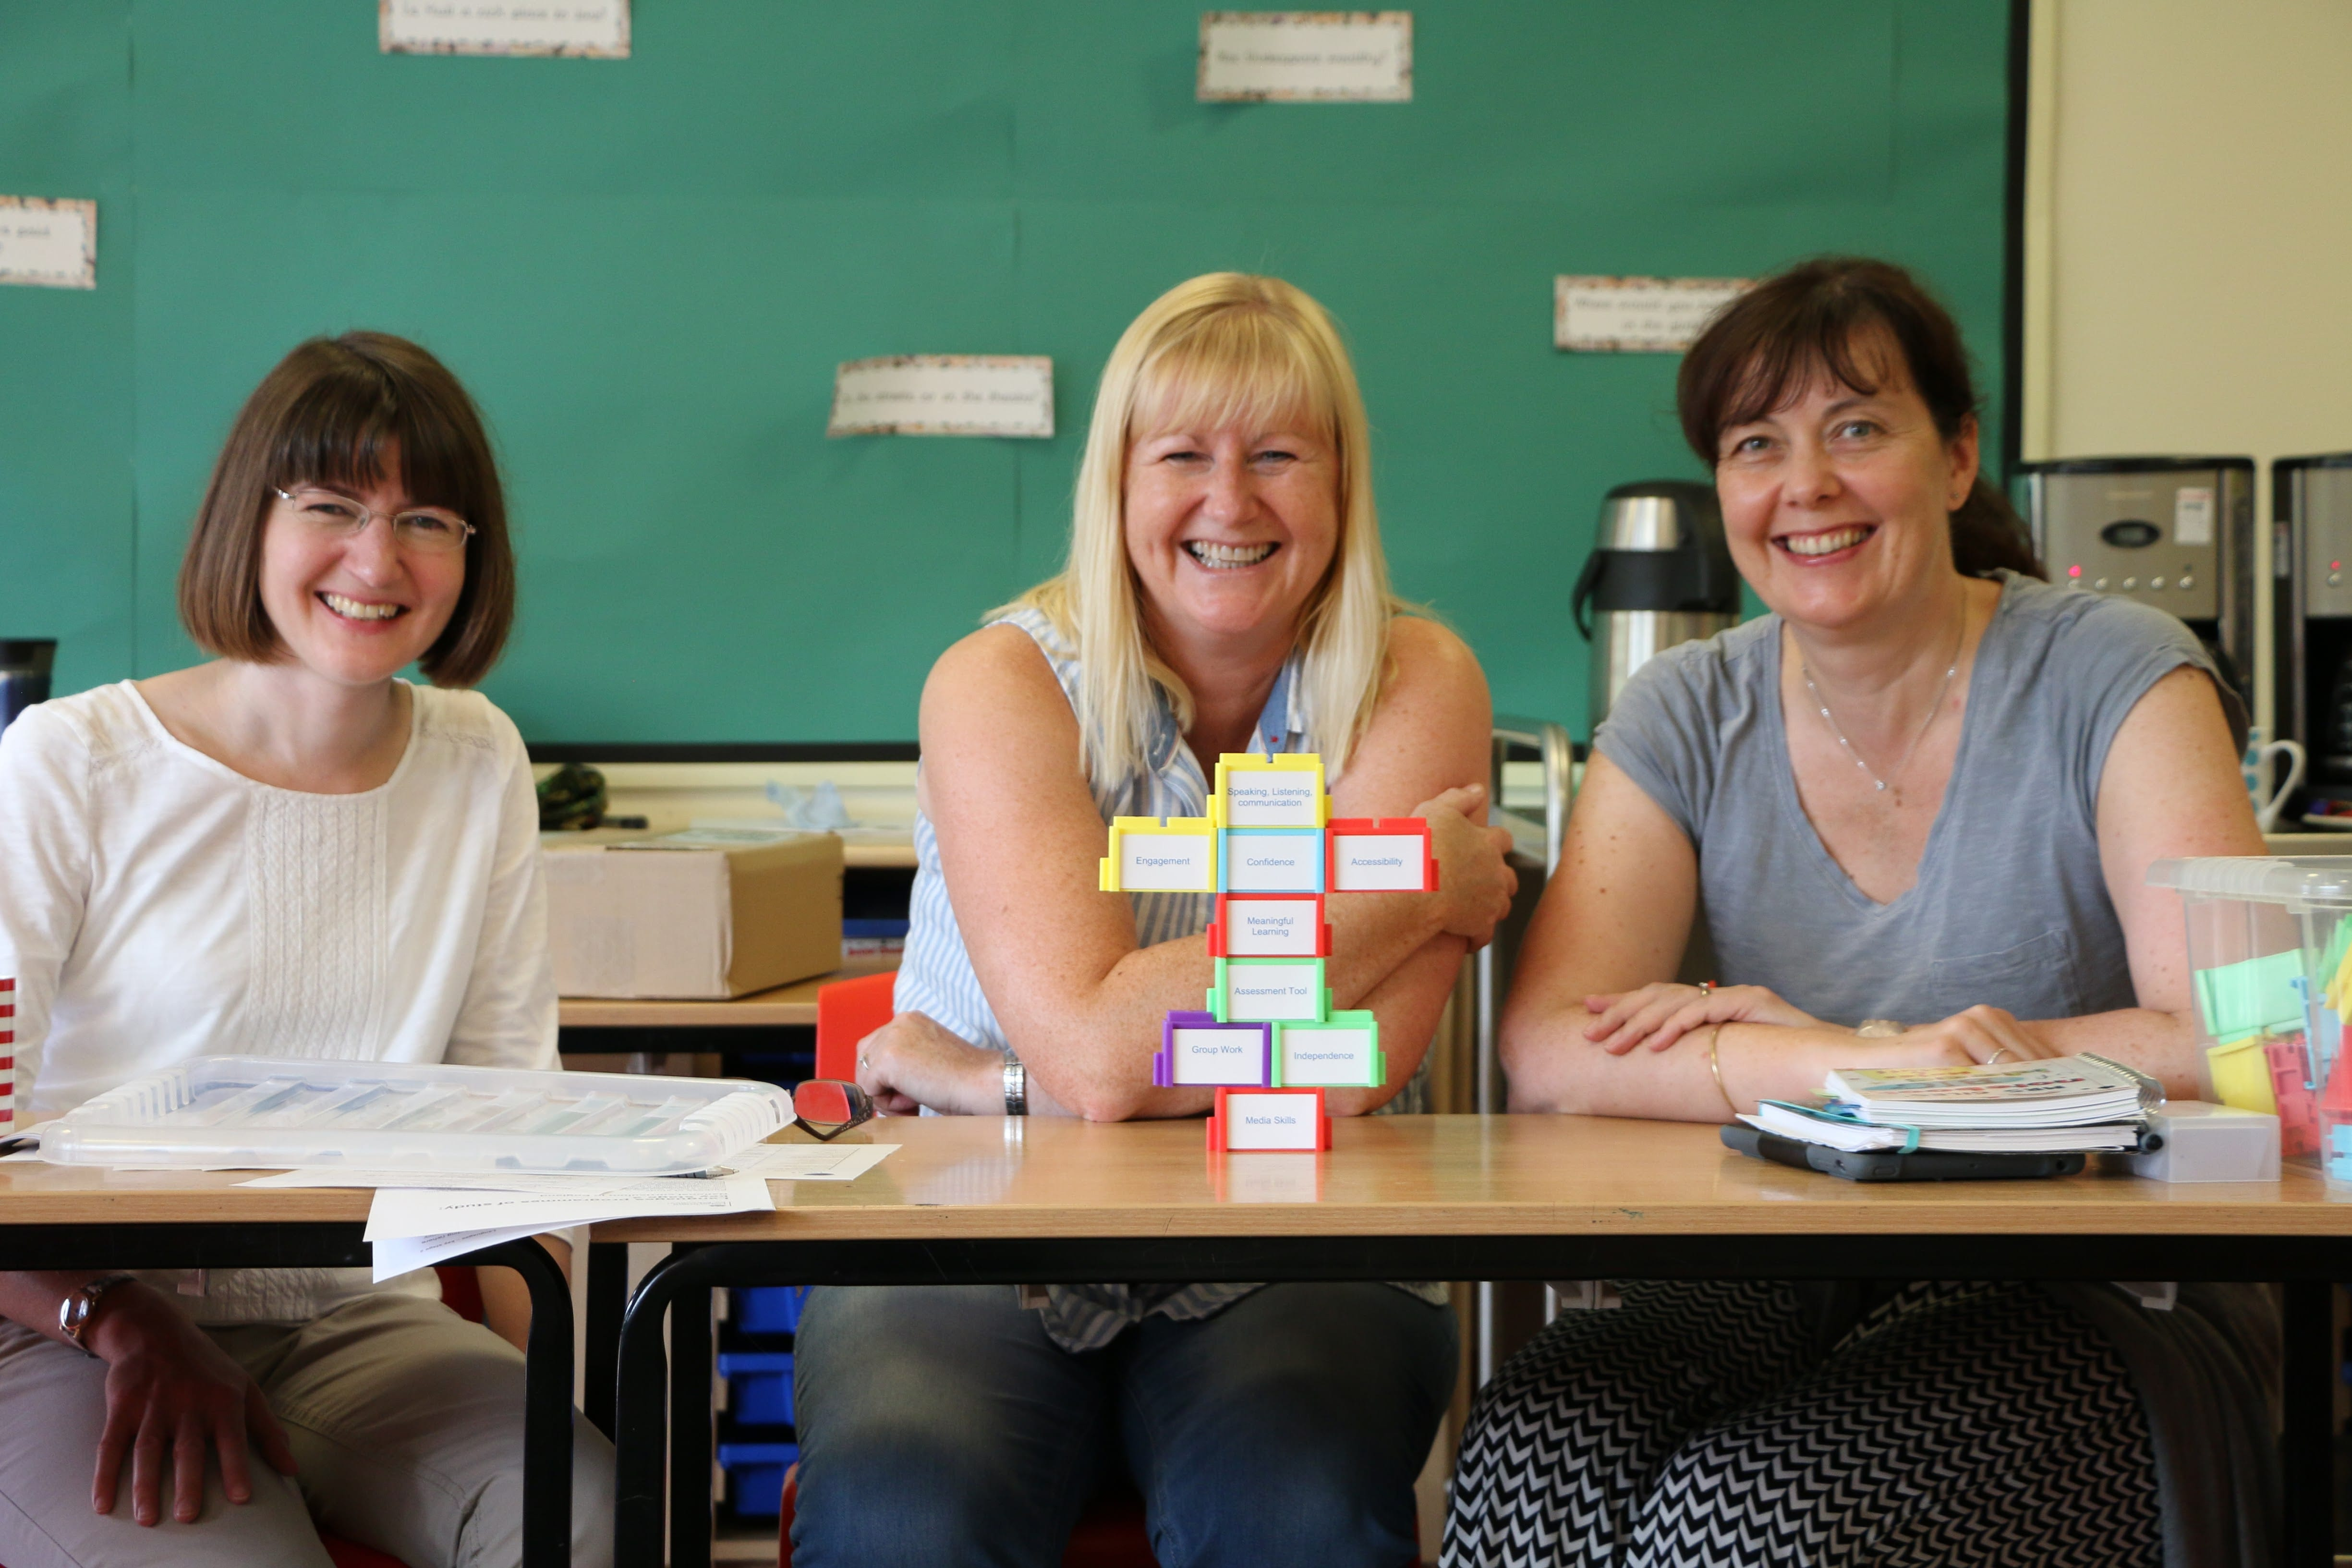 teaching staff embracing the generative learning theory